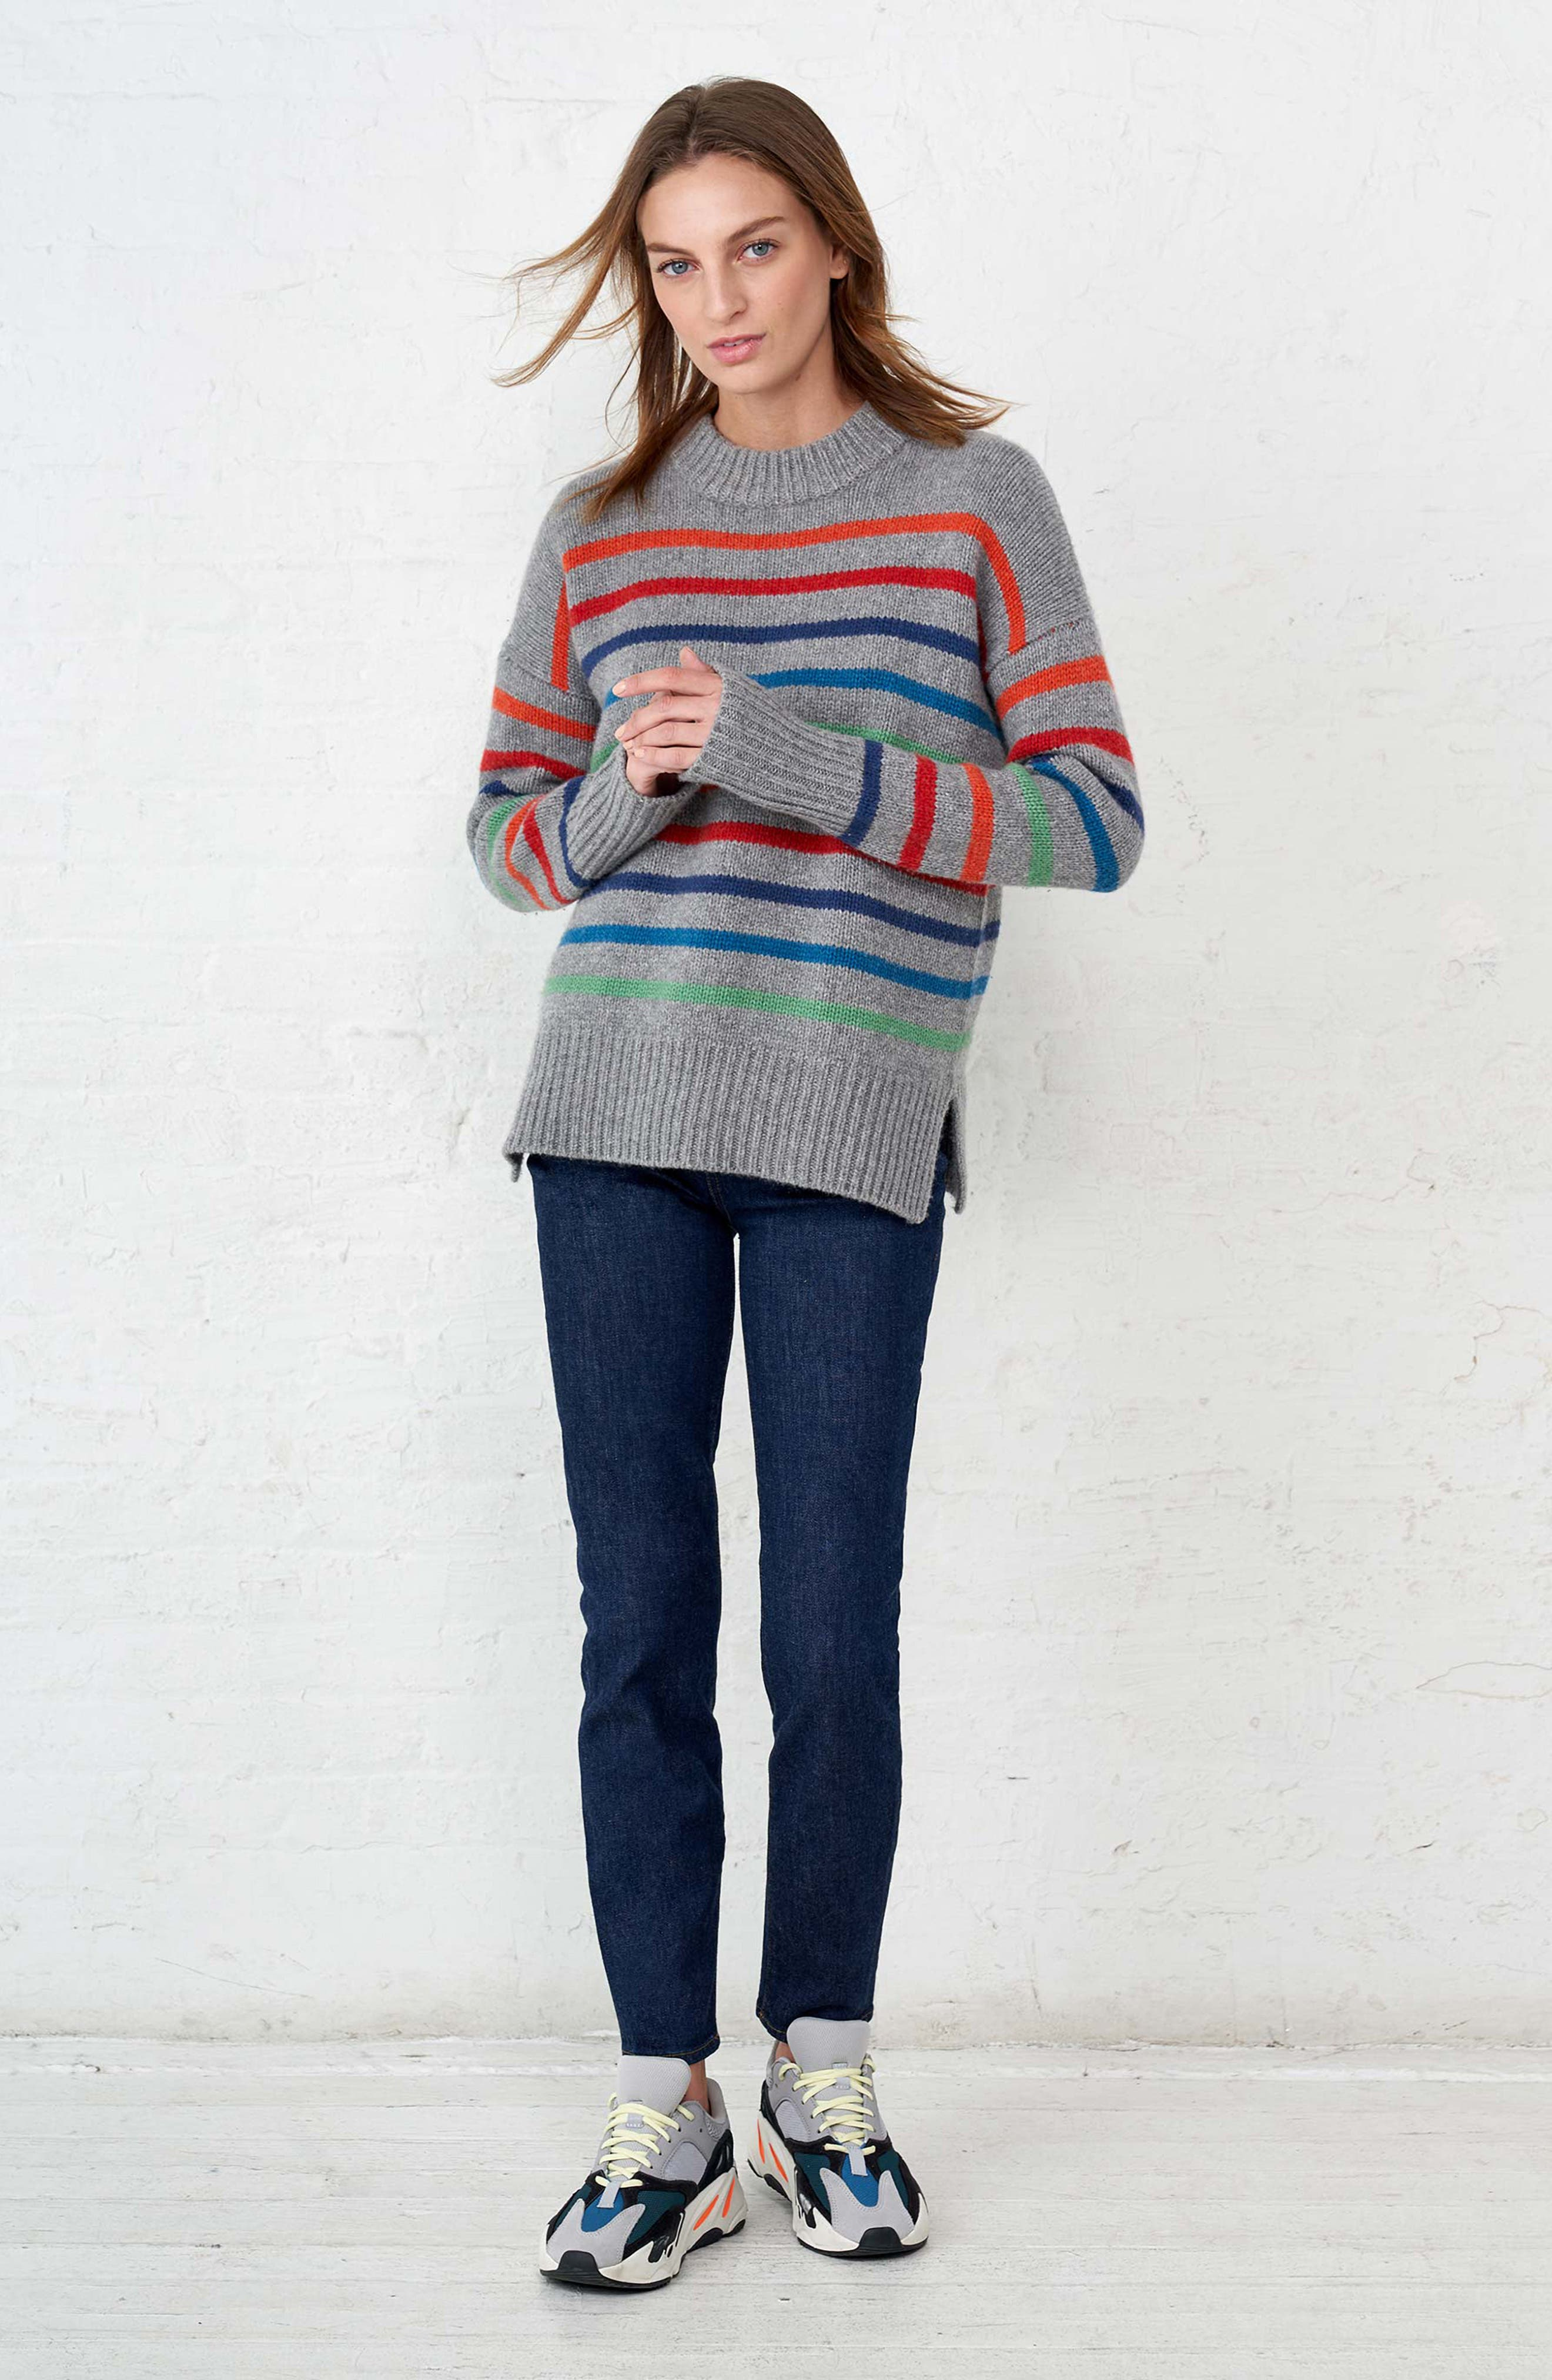 Marin Wool & Cashmere Sweater,                             Alternate thumbnail 8, color,                             RAINBOW STRIPE